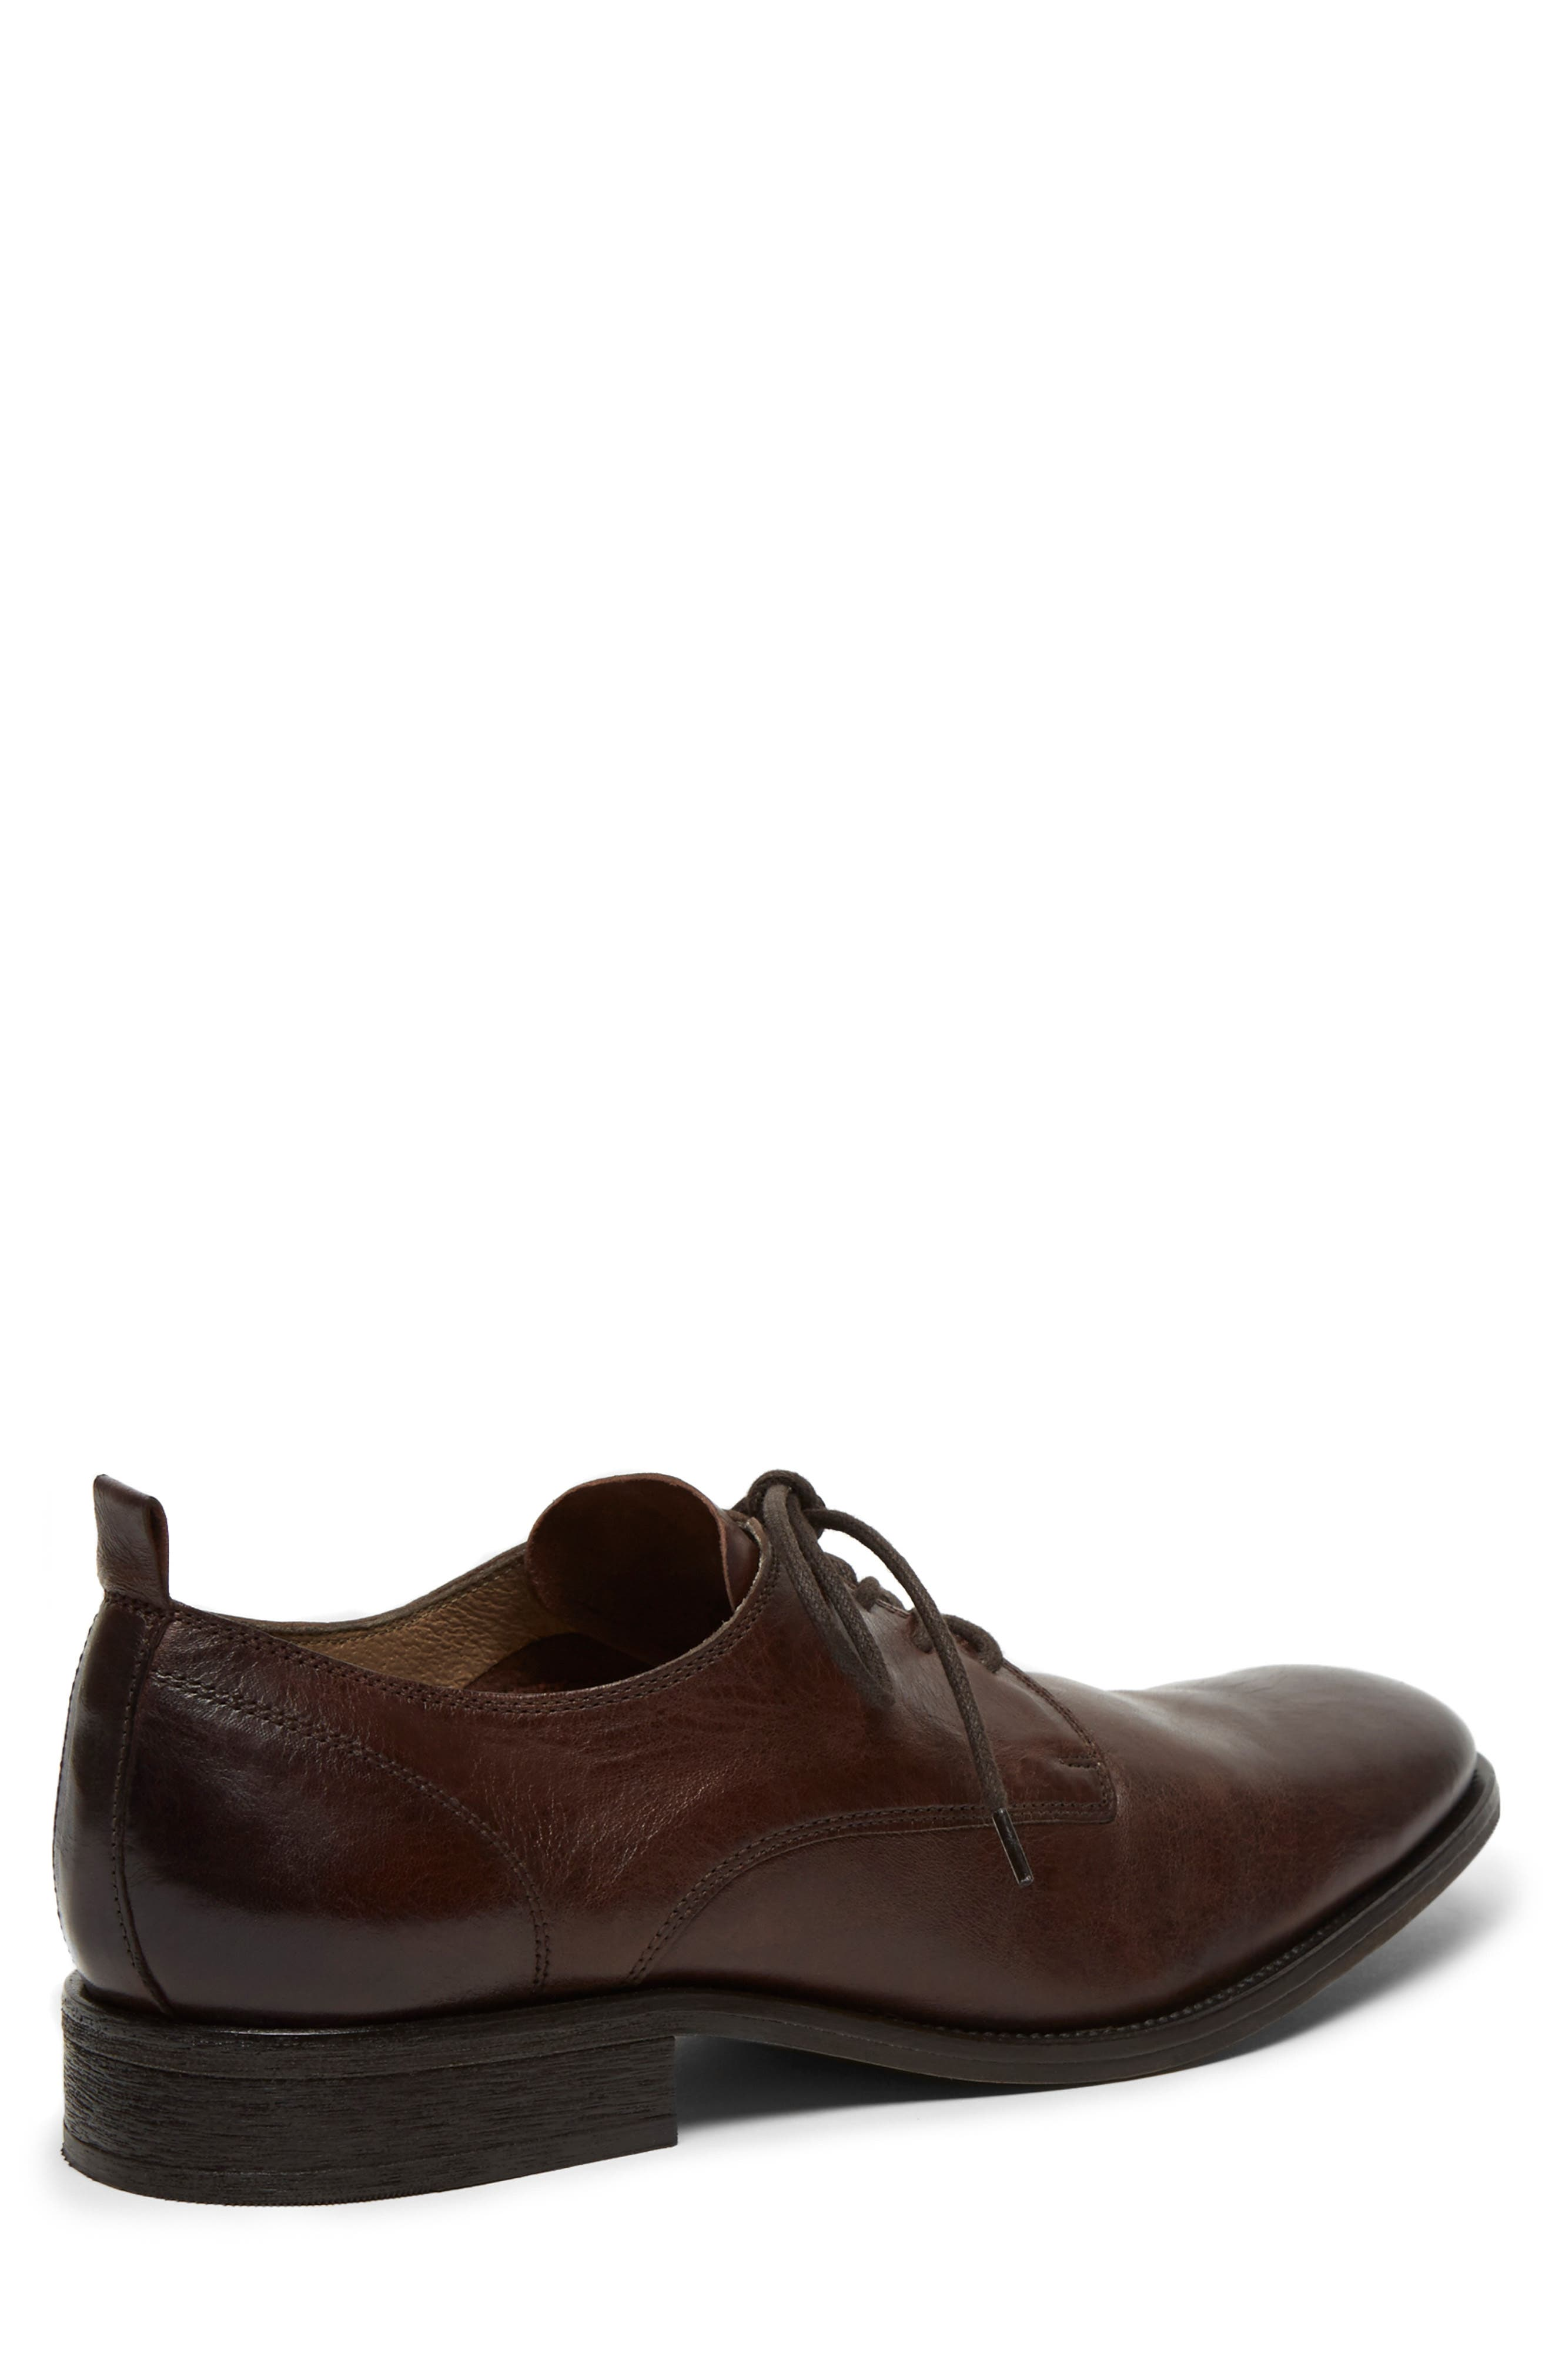 KENNETH COLE NEW YORK, Indio Plain Toe Derby, Alternate thumbnail 5, color, BROWN LEATHER